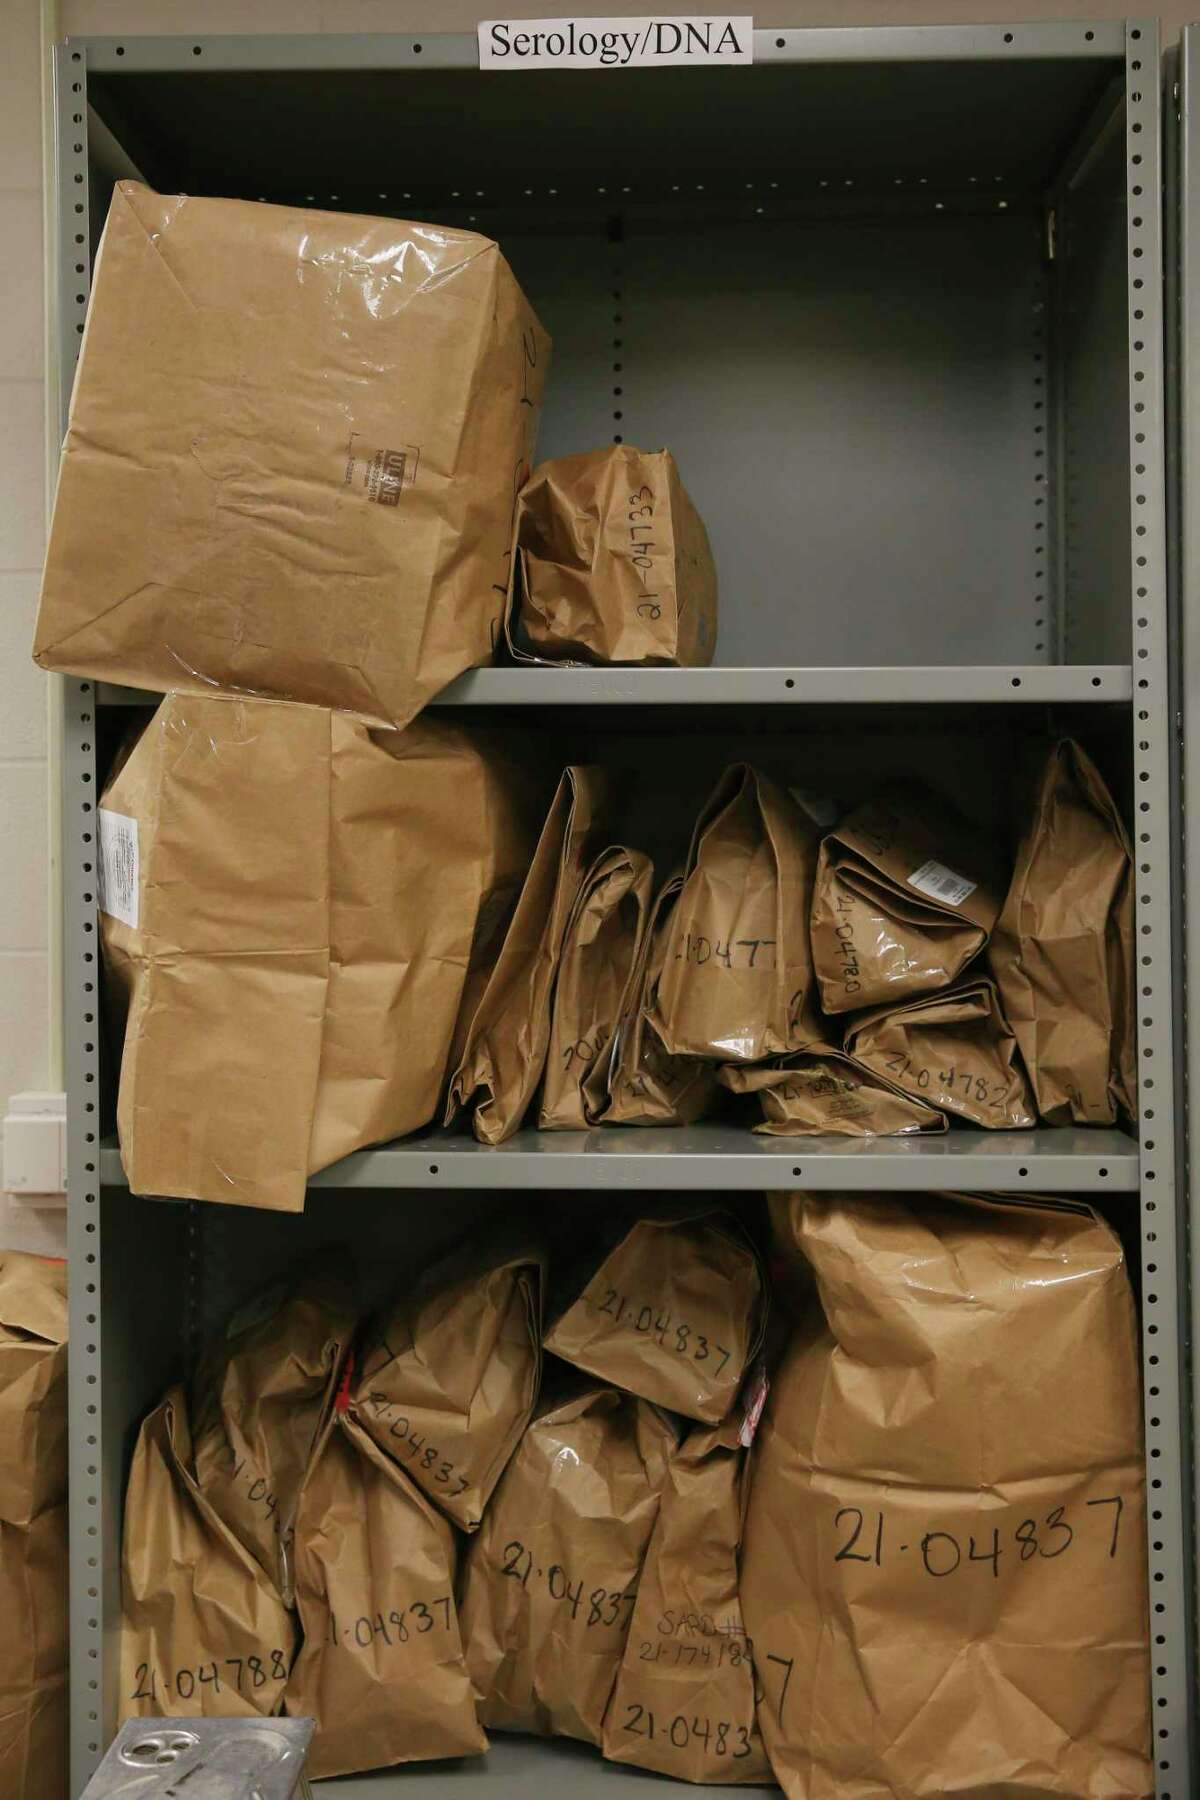 Bags of evidence are stored at the Bexar County Crime Lab on Tuesday, Sept. 21, 2021.